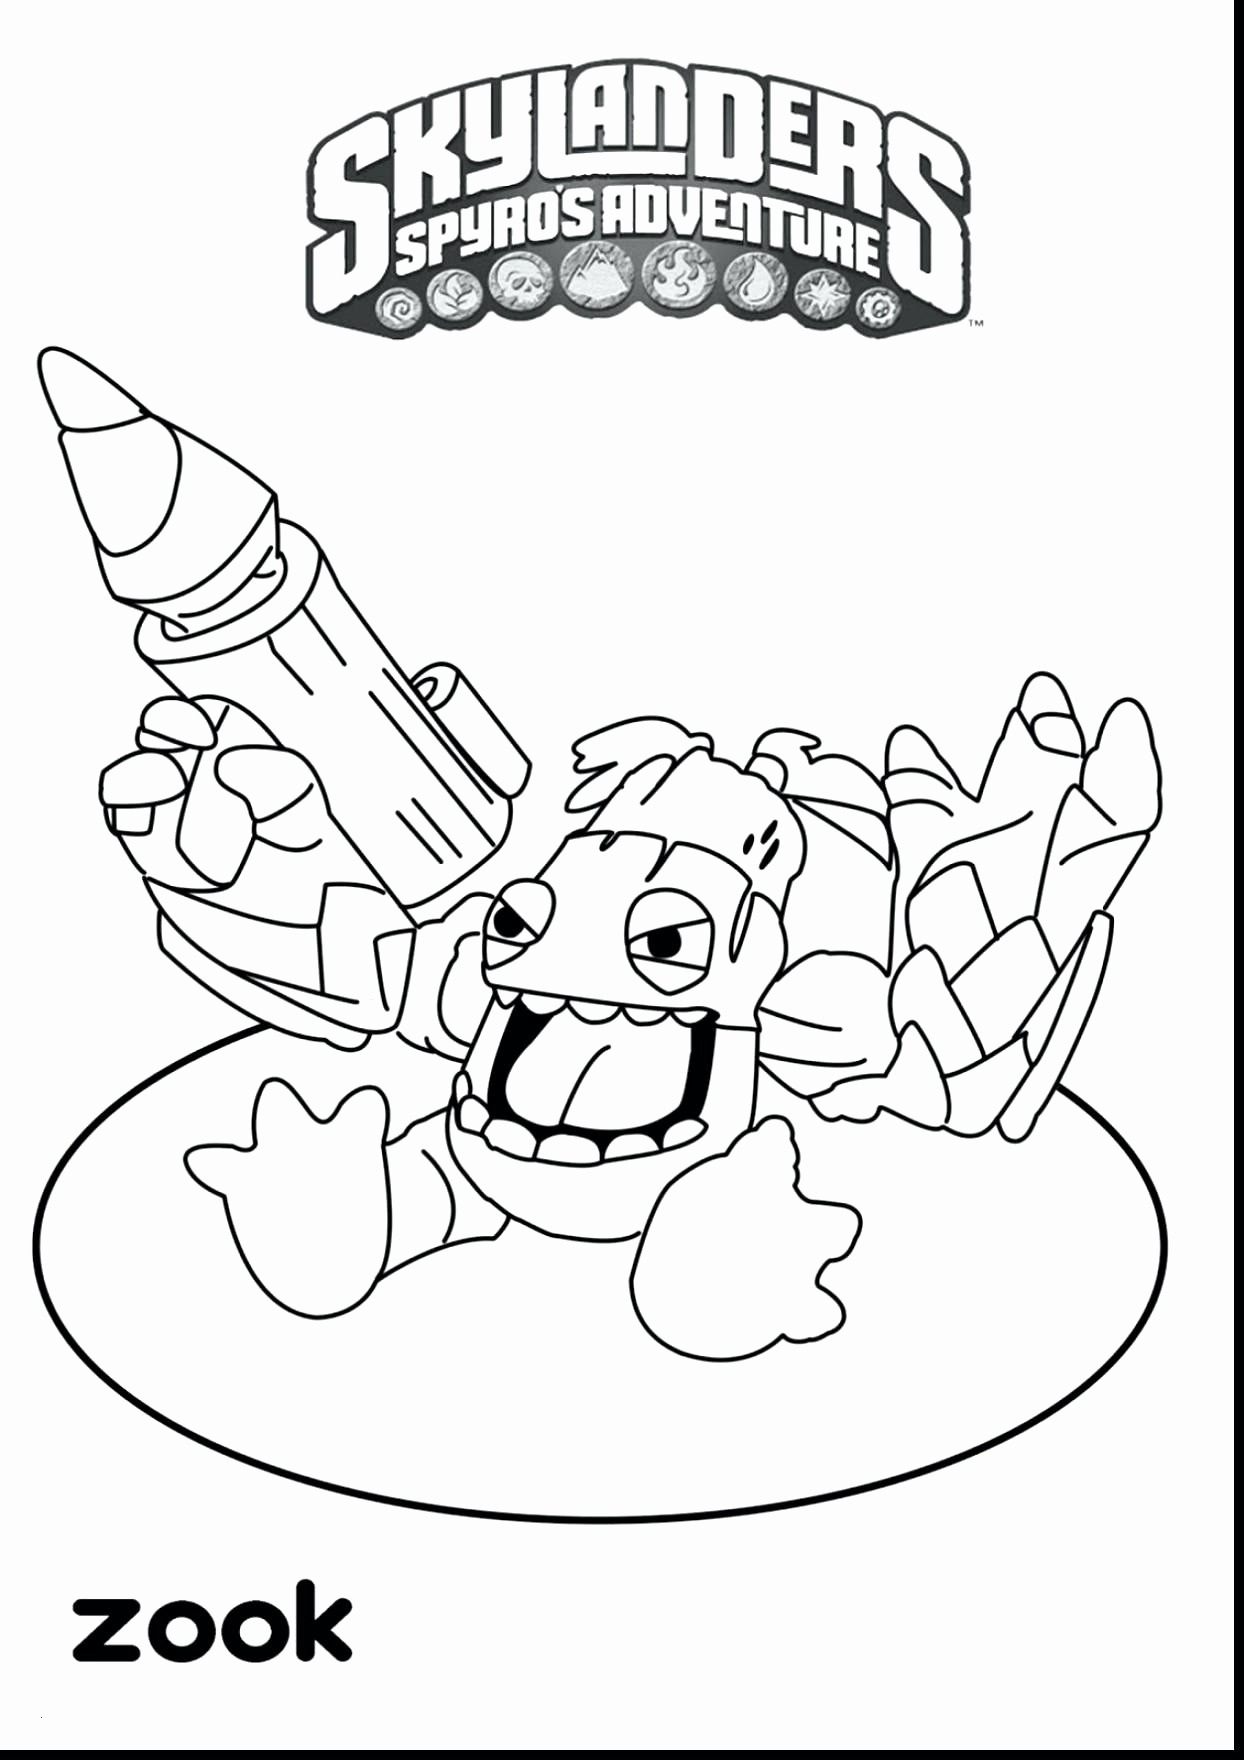 Lego Dimensions Coloring Pages  Gallery 19a - Free For Children